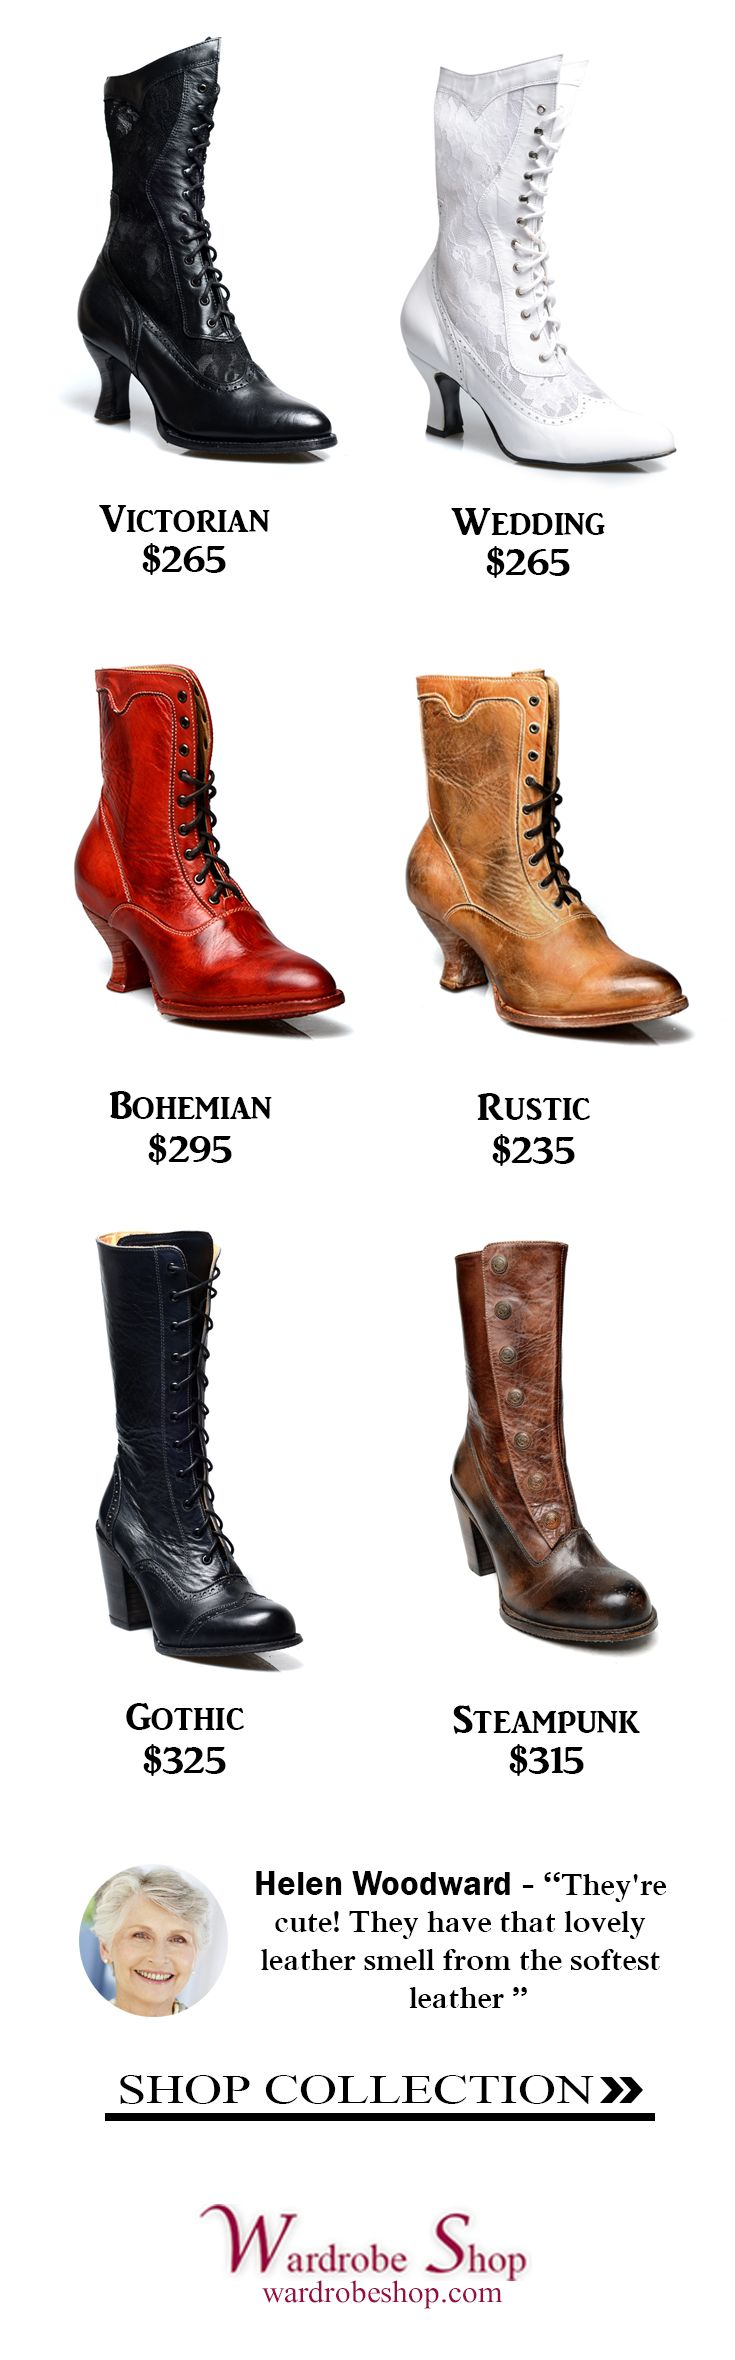 Victorian Boots | Traditional Wedding Boots | Steampunk | Rustic | Country | Western | Bohemian | Vintage | Gothic | Bohemian | Oak Tree Farms